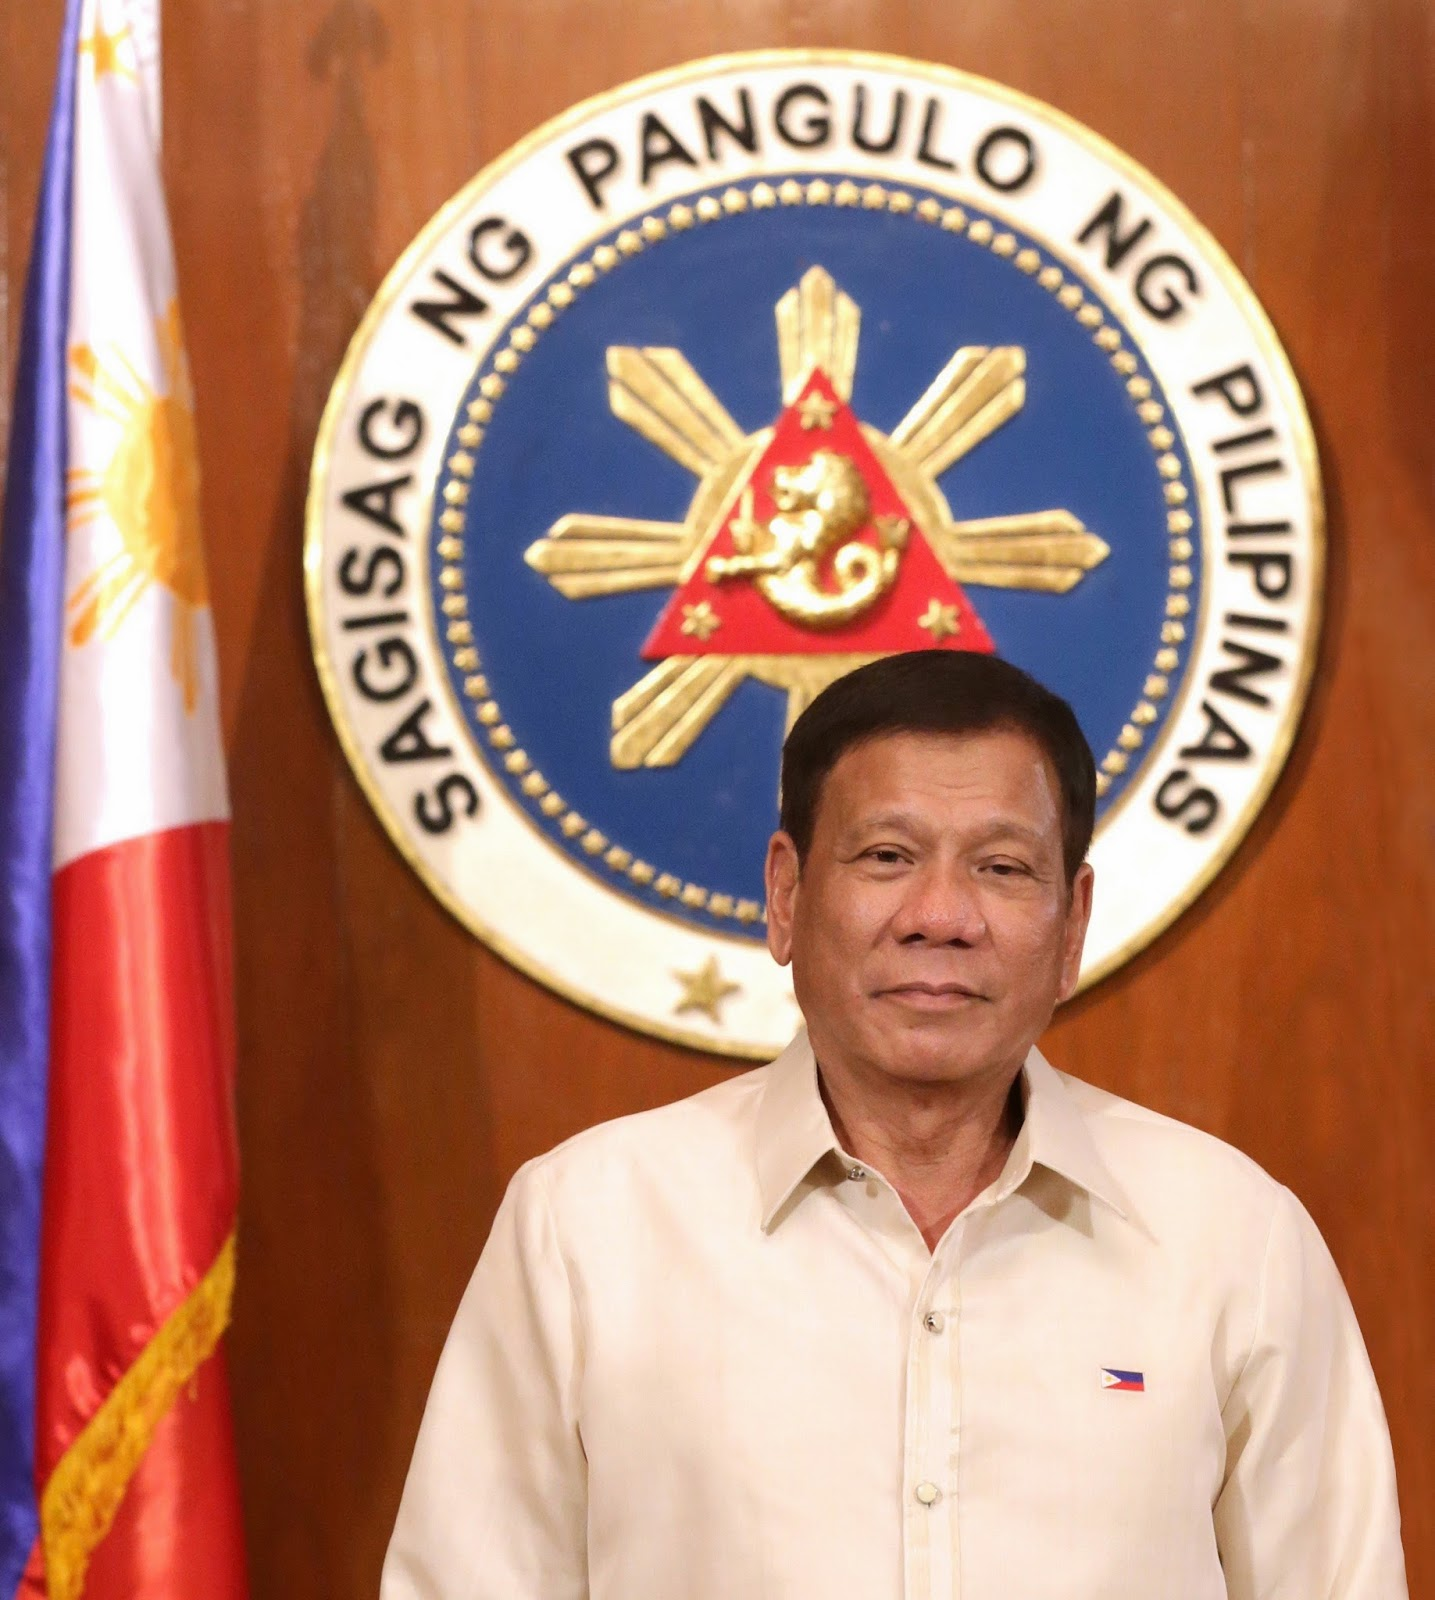 Who is Rodrigo Duterte?